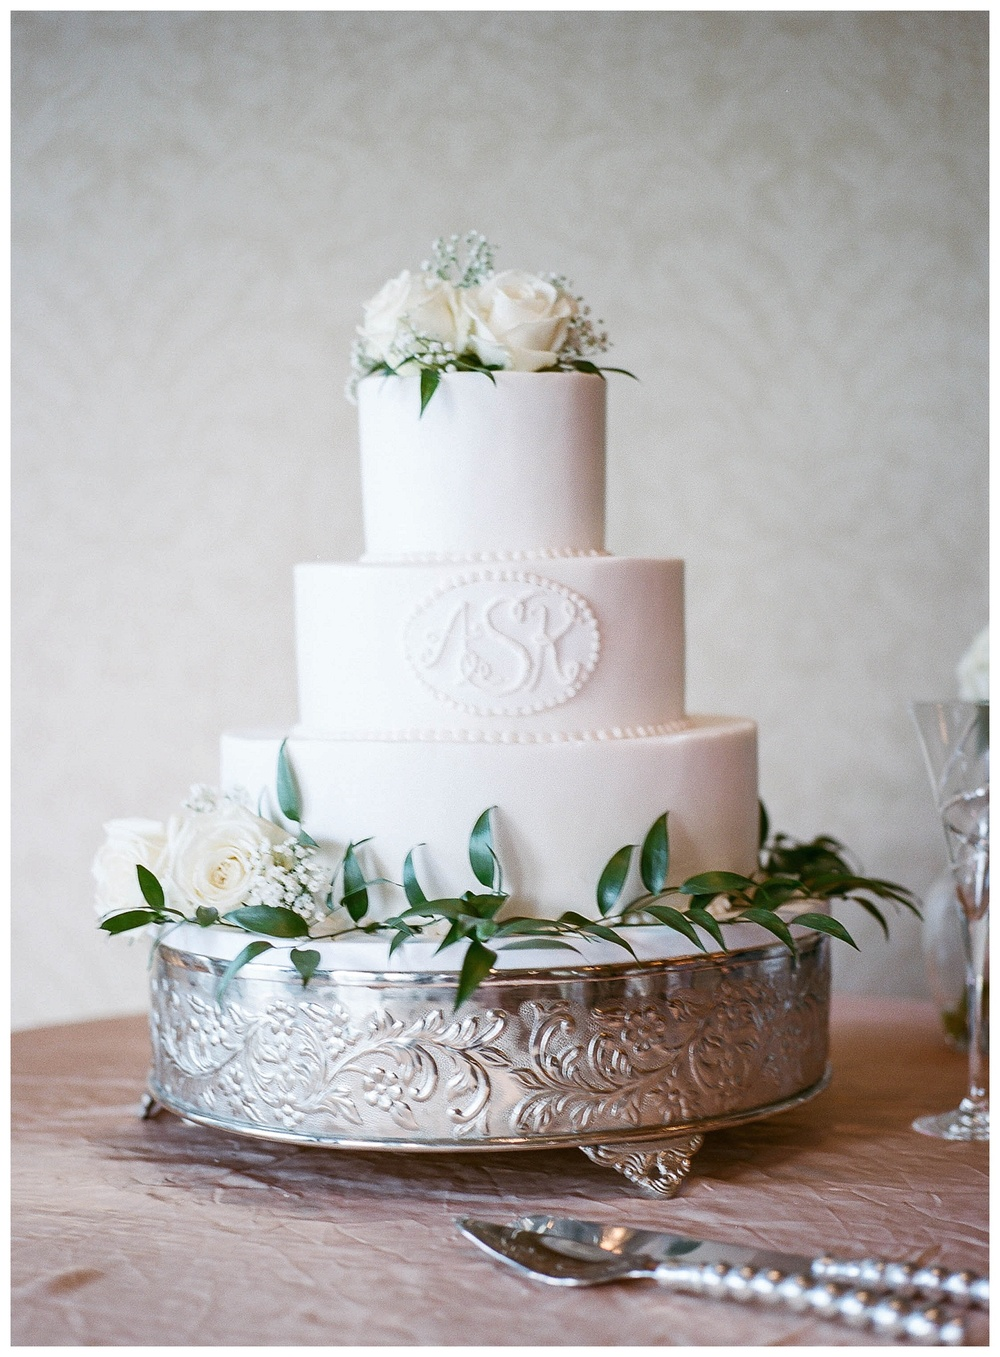 Destination wedding - film wedding photography - buttercream cake at Country Club of South Carolina wedding